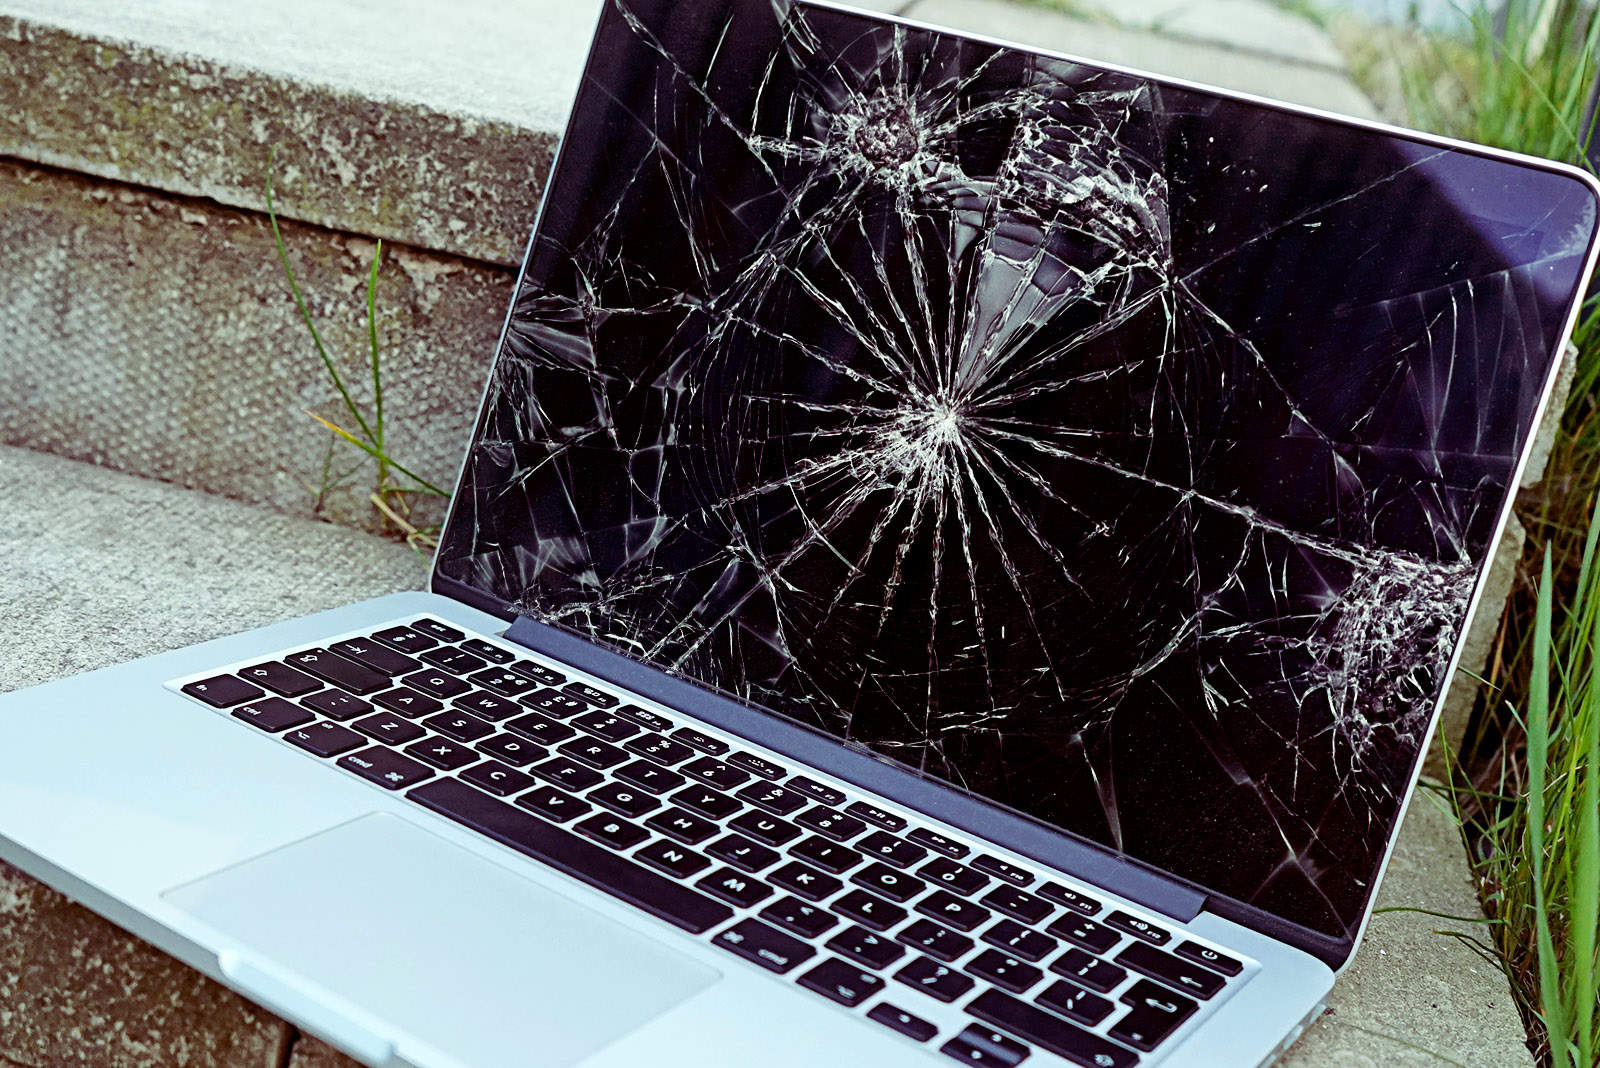 smashed_macbook